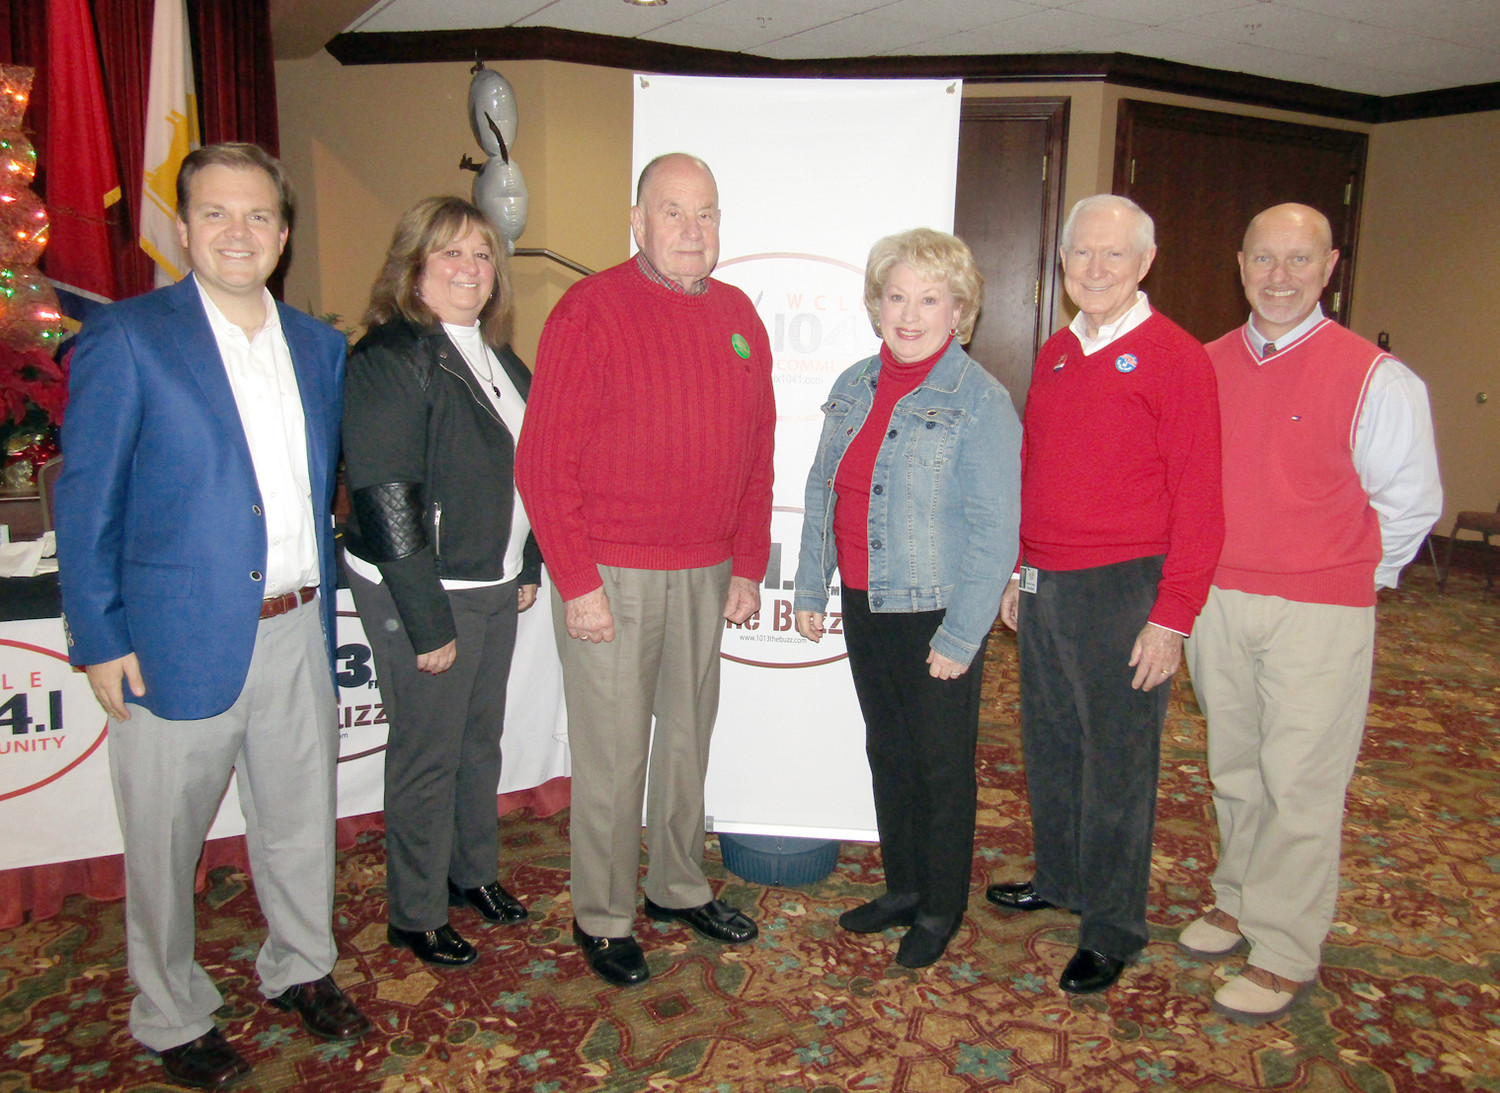 Organizers and supporters of the Empty Stocking Fund are all smiles after the end of record-setting year of donations. From left are Steve Hartline, WCLE; Brenda Lawson; Mayor Tom Rowland; Sandra Rowland, Beecher Hunter, president of Life Care Centers of Cleveland; and Dewayne Williams, WCLE.